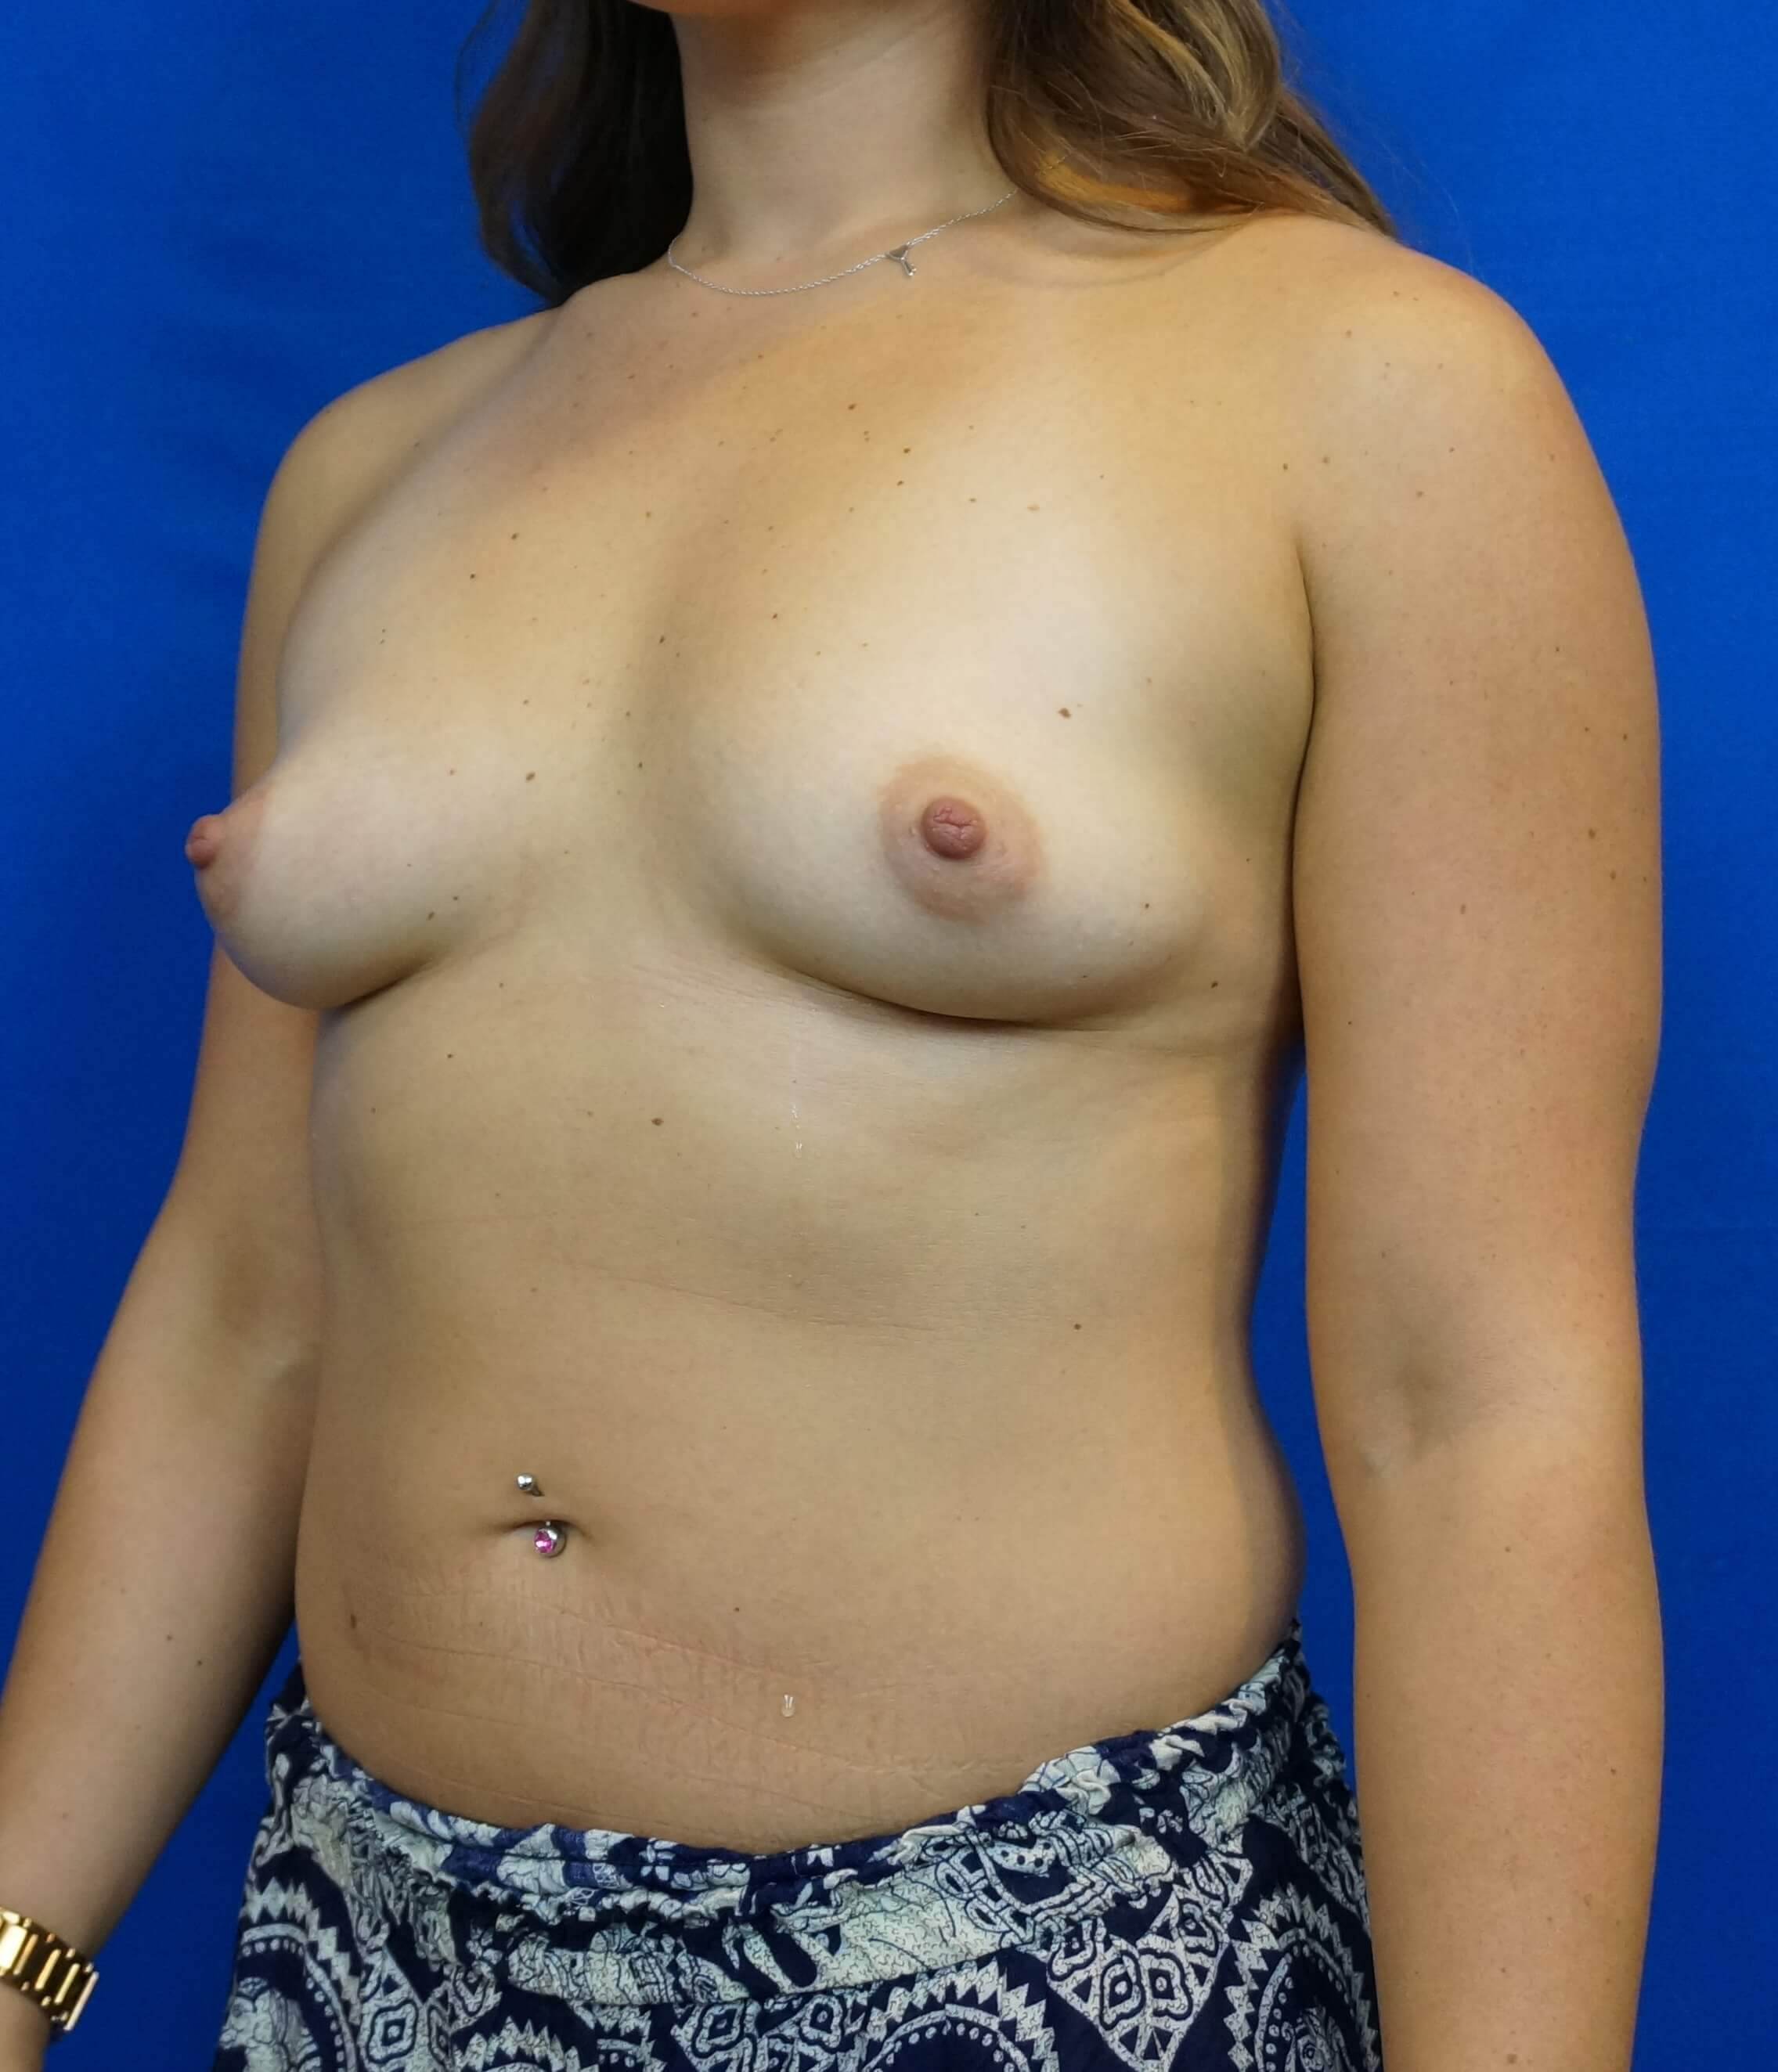 Breast Augmentation Photos LV Before Breast Augmentation